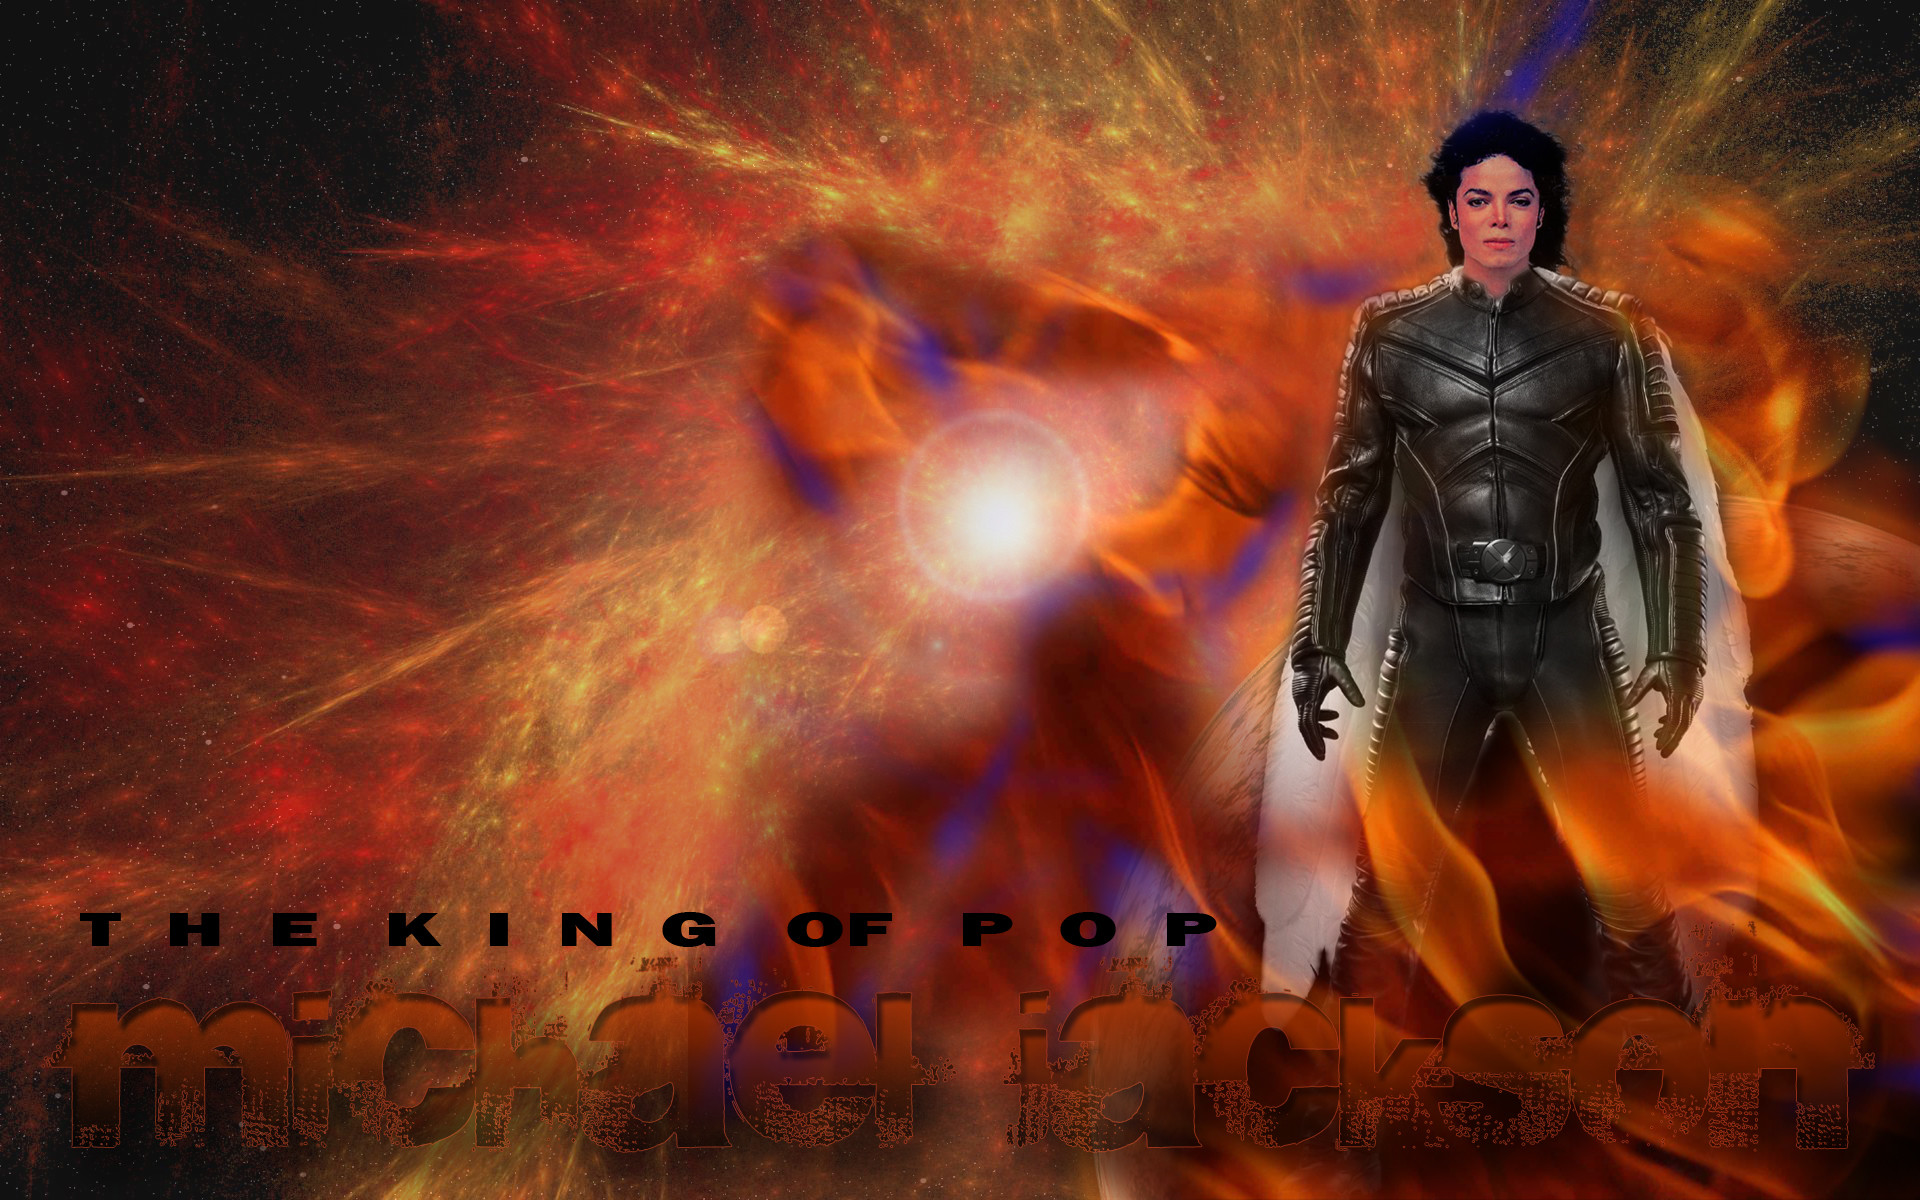 1920x1200 Michael Jackson wallpaper. I don't know who made this, but he's an